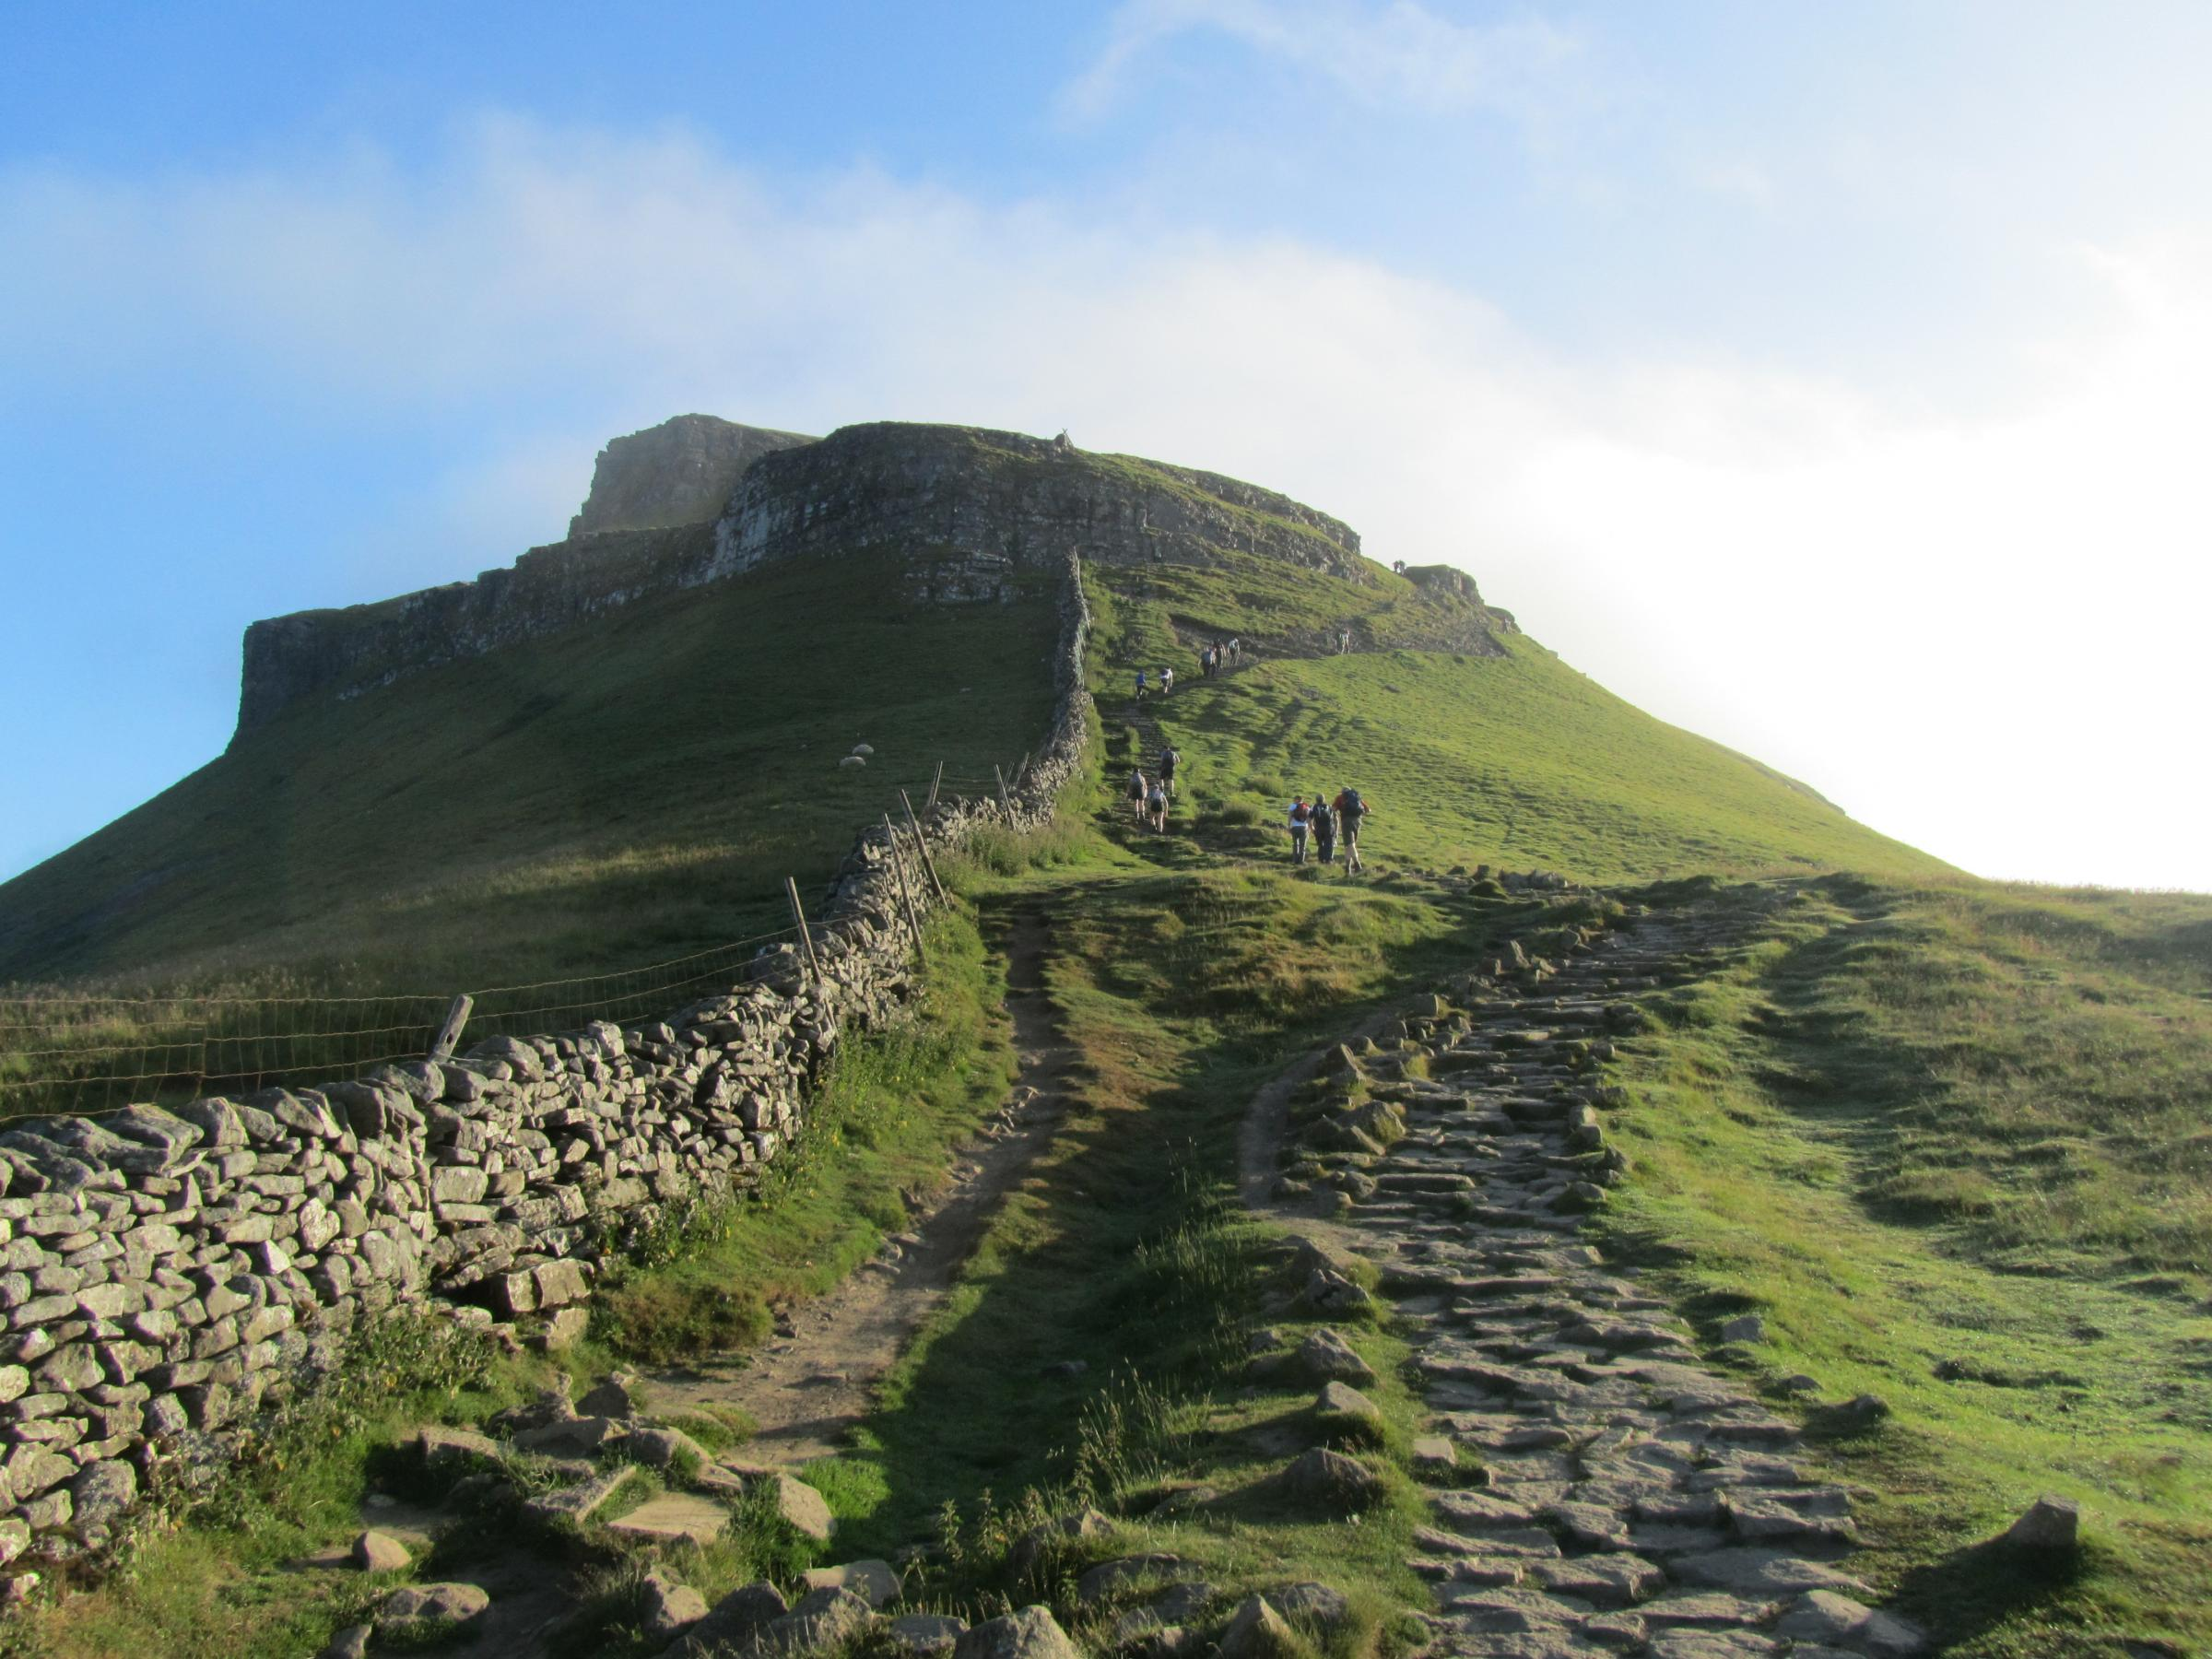 Walkers make their way up Pern-y-ghent.